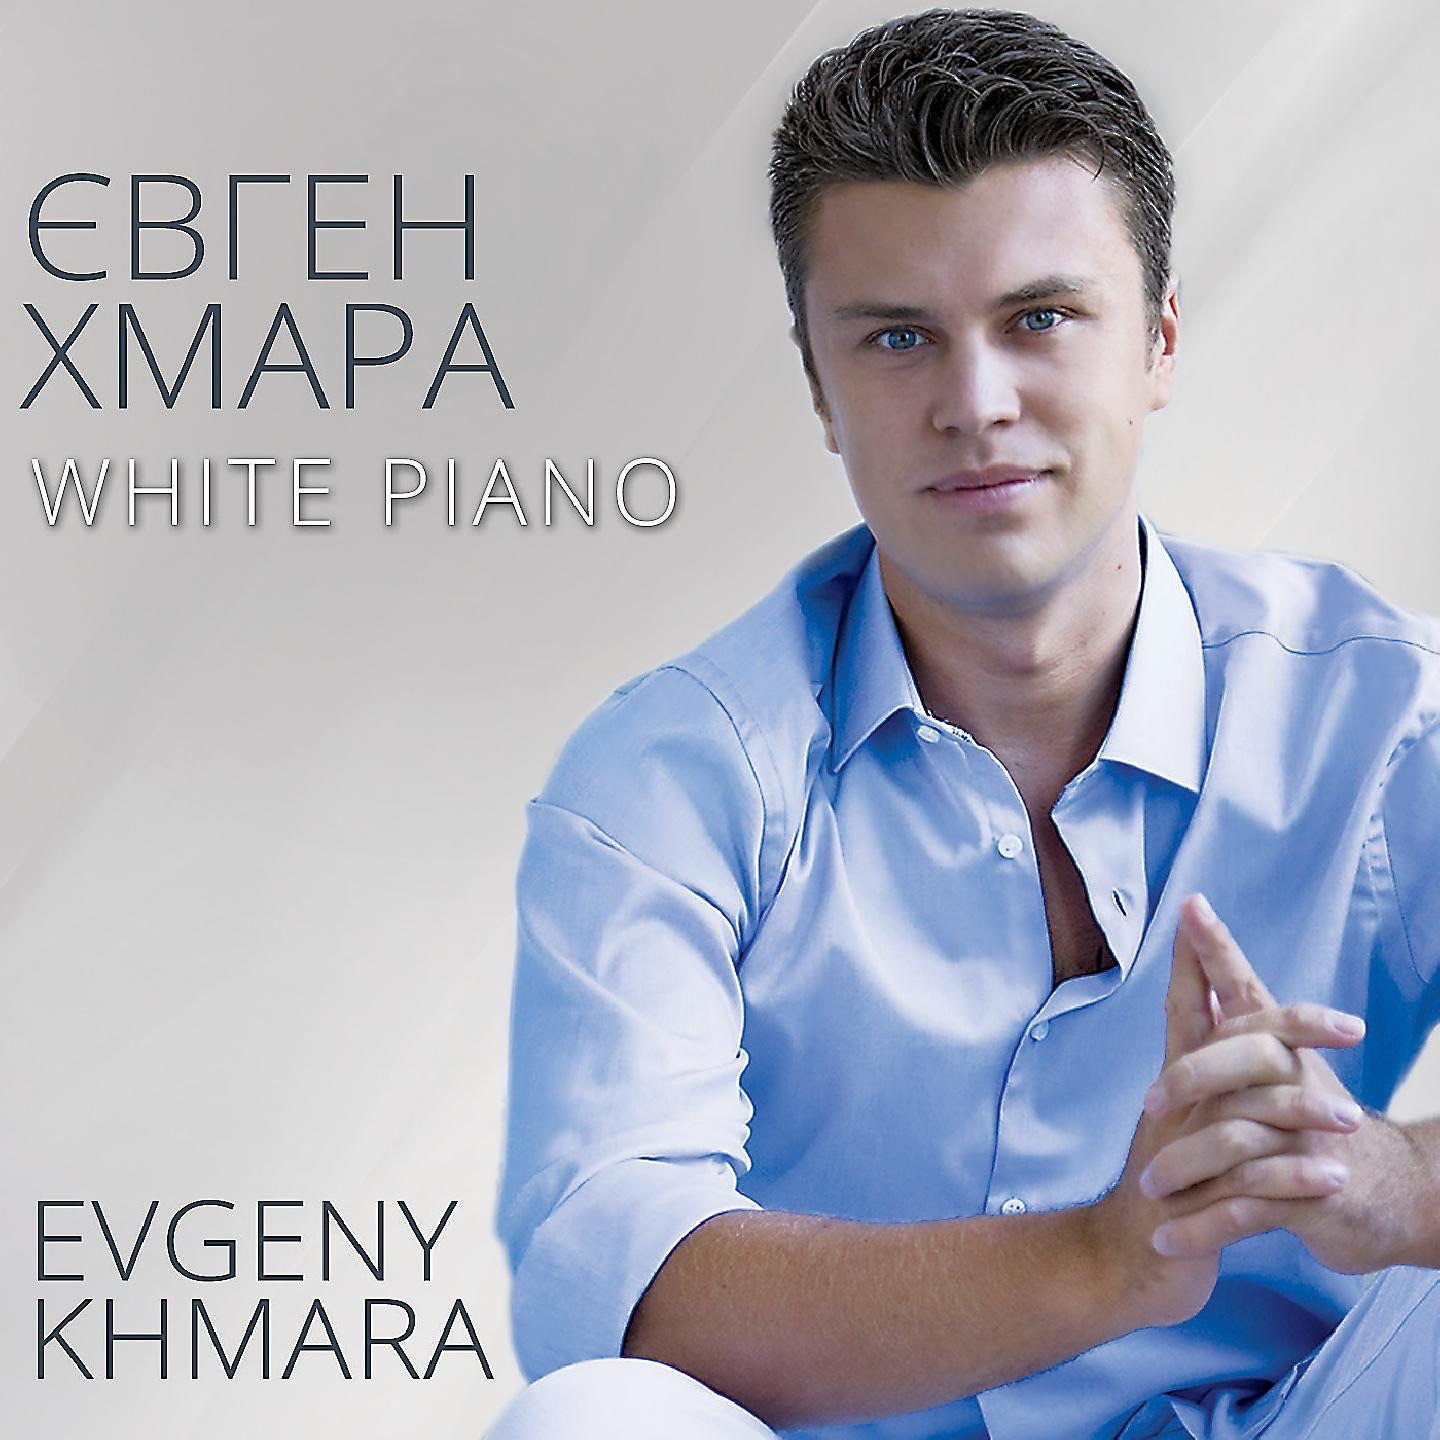 Download album: White Piano - artist Evgeny Khmara